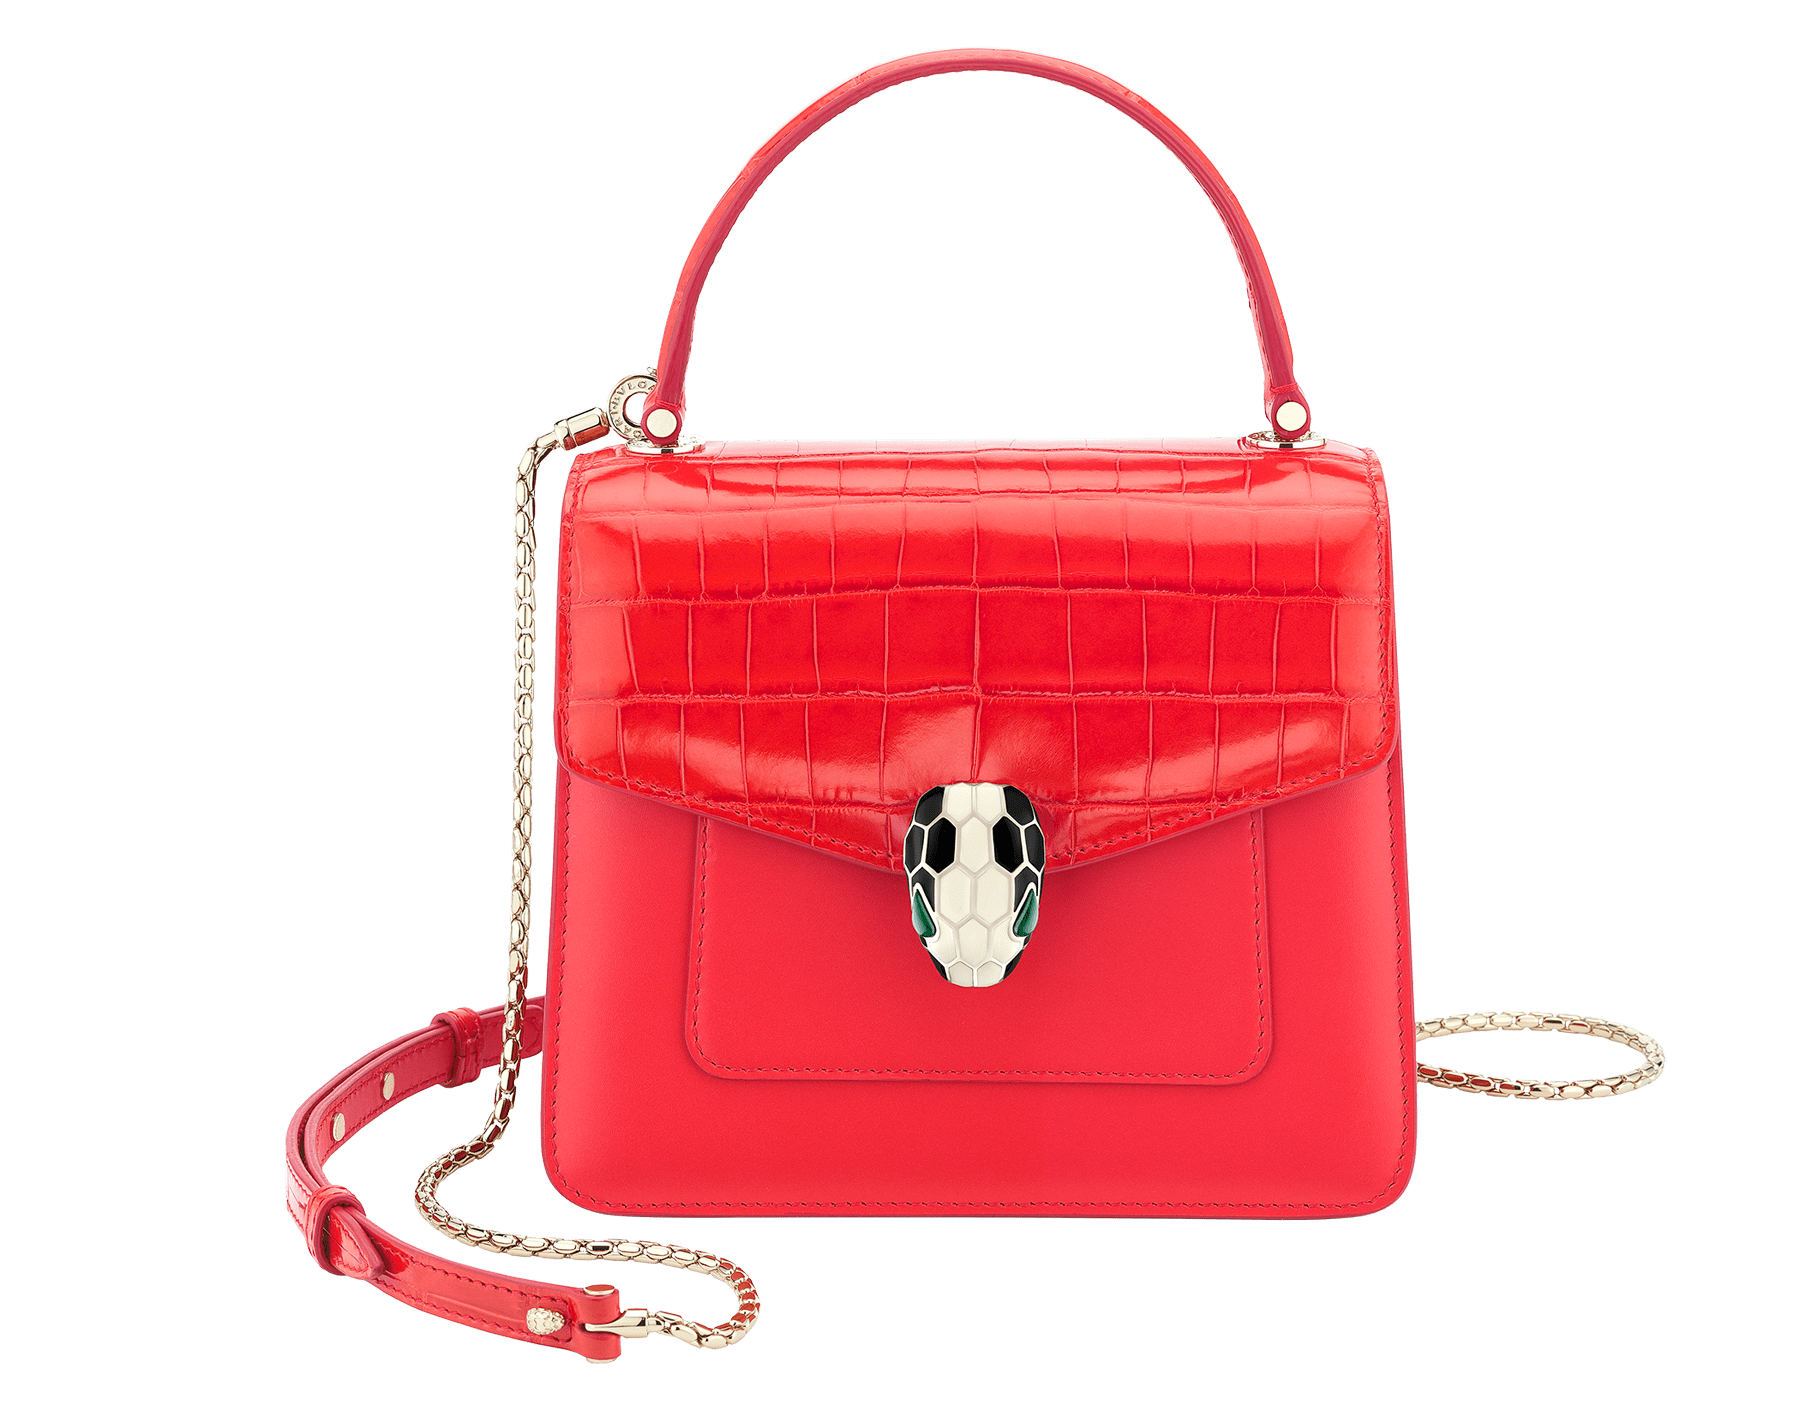 Serpenti Forever crossbody bag in sea star coral shiny croco skin and smooth calf leather. Snakehead closure in light gold plated brass decorated with black and white enamel, and green malachite eyes. 288491 image 1